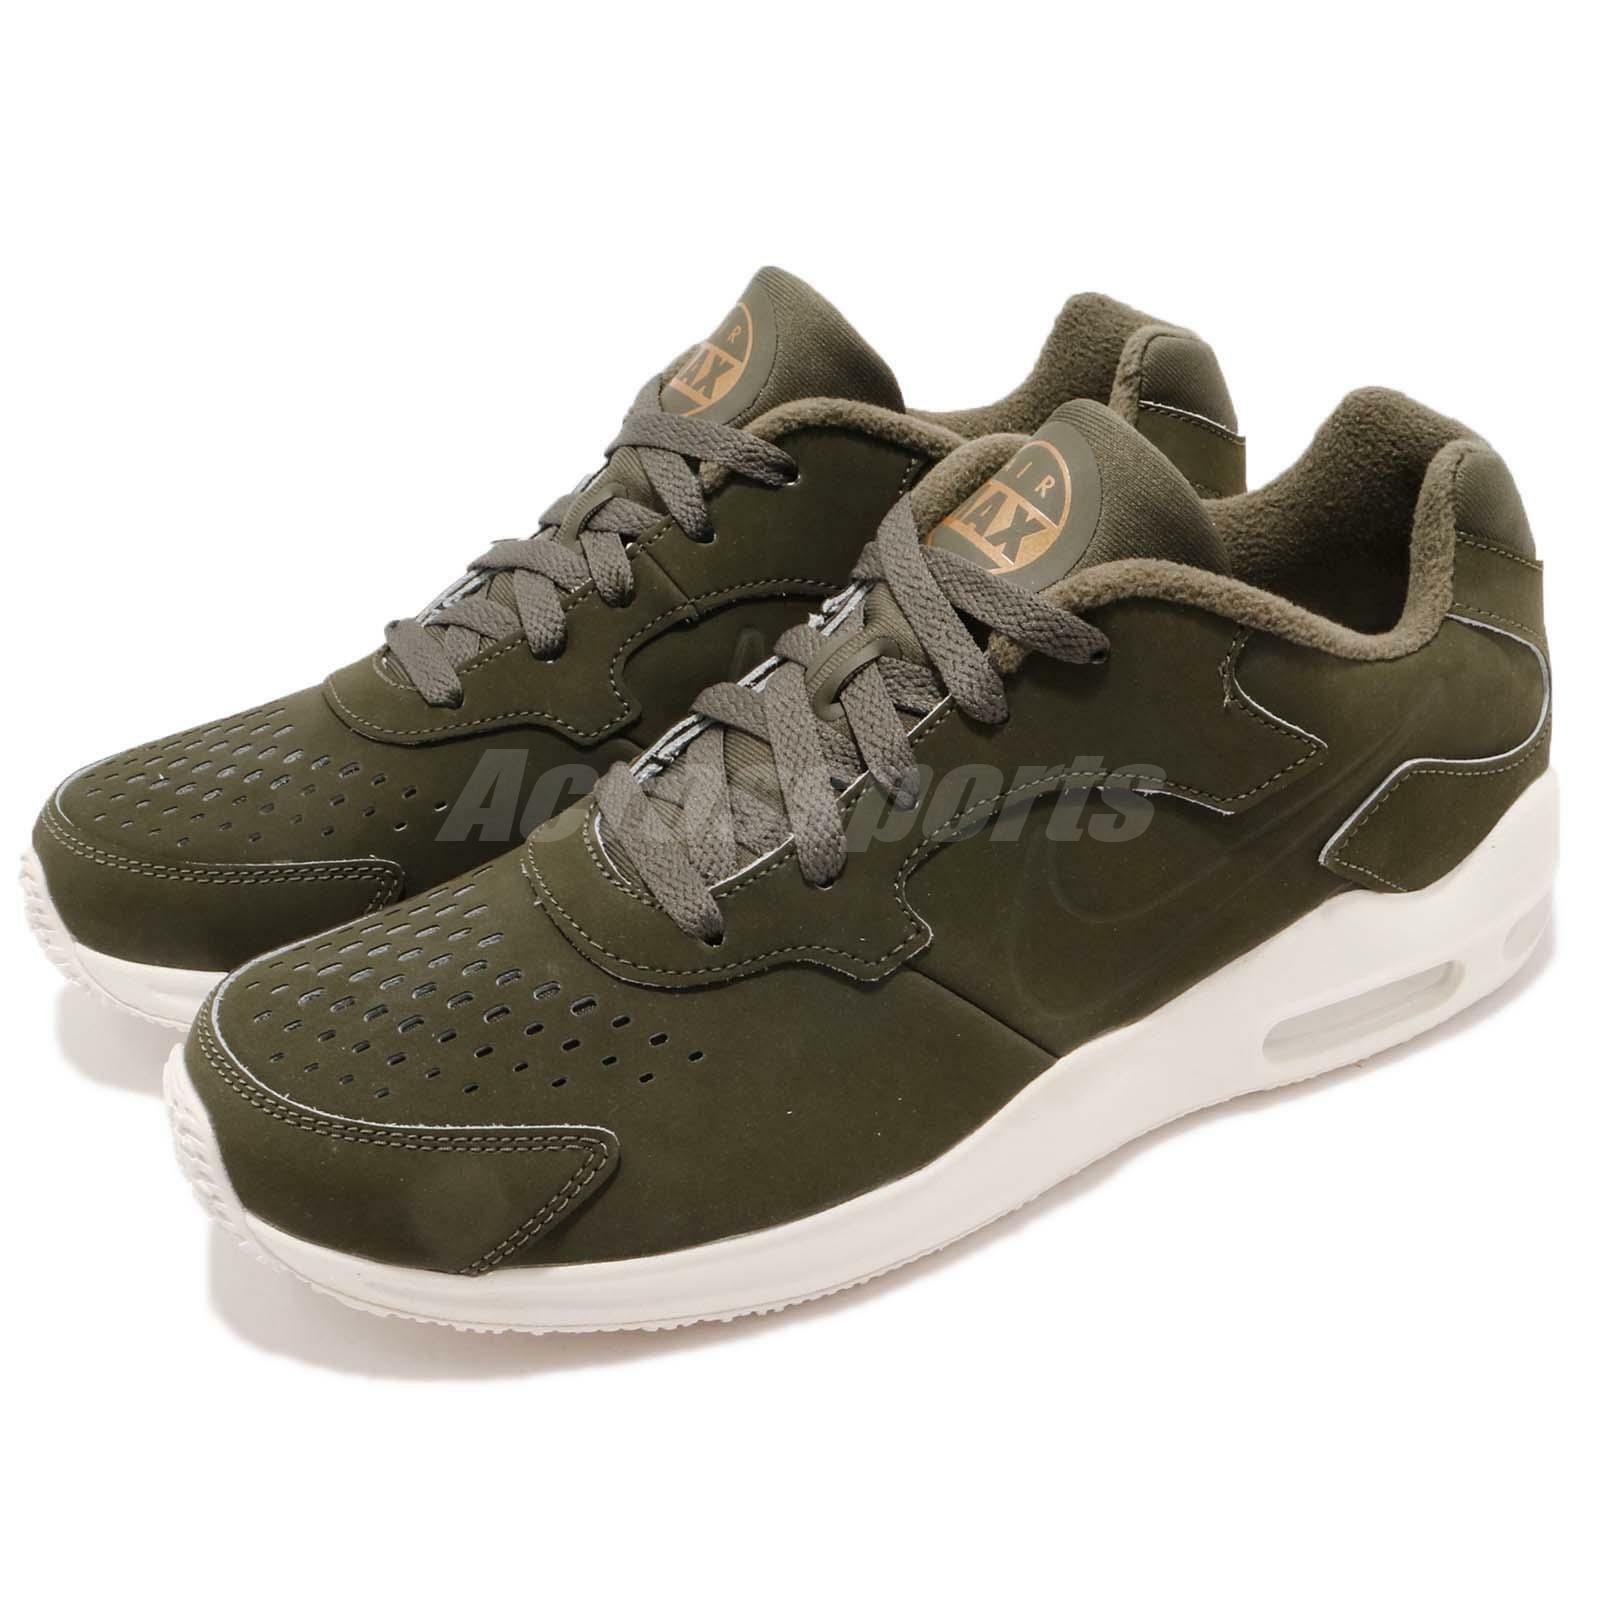 Nike Air Max Guile / hommes PREM hommes / Running Chaussures Lifestyle Sneakers Pick 1 08b0a8